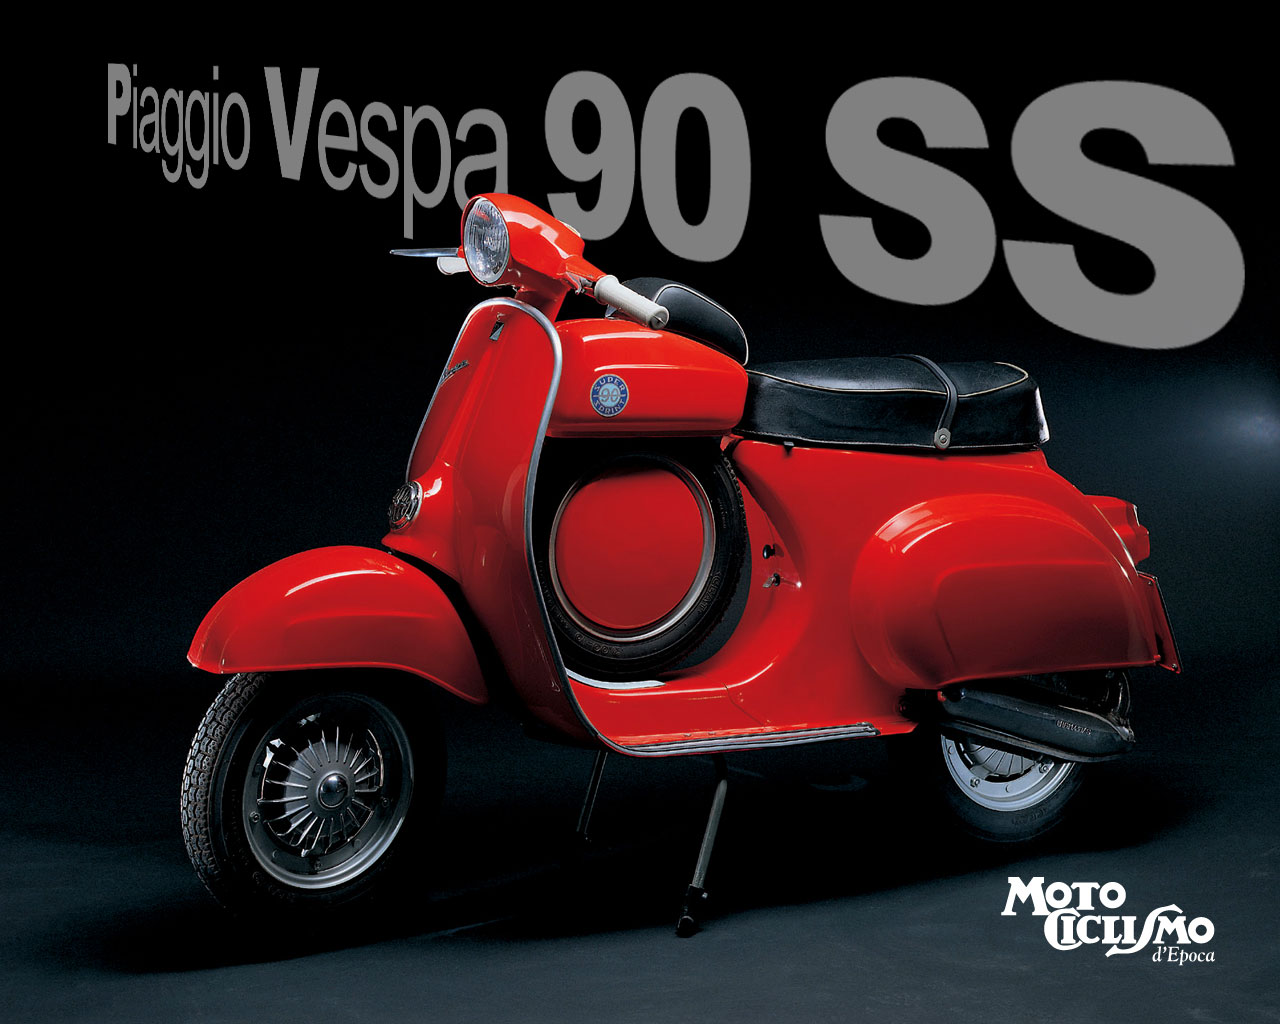 vespa 90 ss 1966 vespa scooters. Black Bedroom Furniture Sets. Home Design Ideas